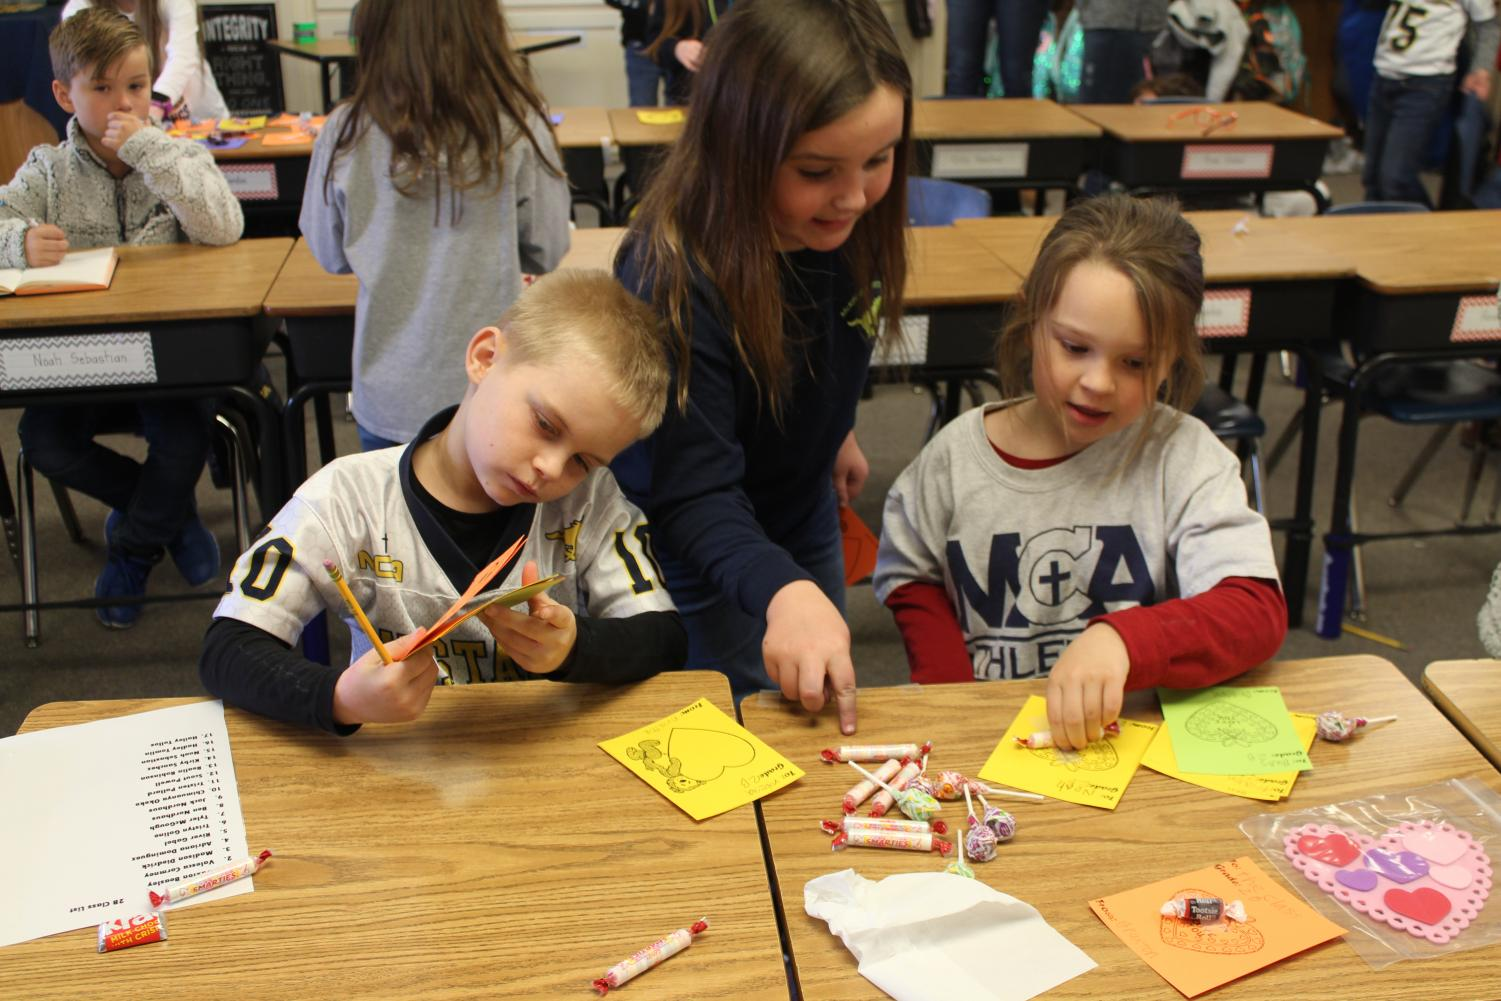 Braxton Beazley, River Gabel and Valesca Cormney gather together to work on Val-O-Grams for friends.